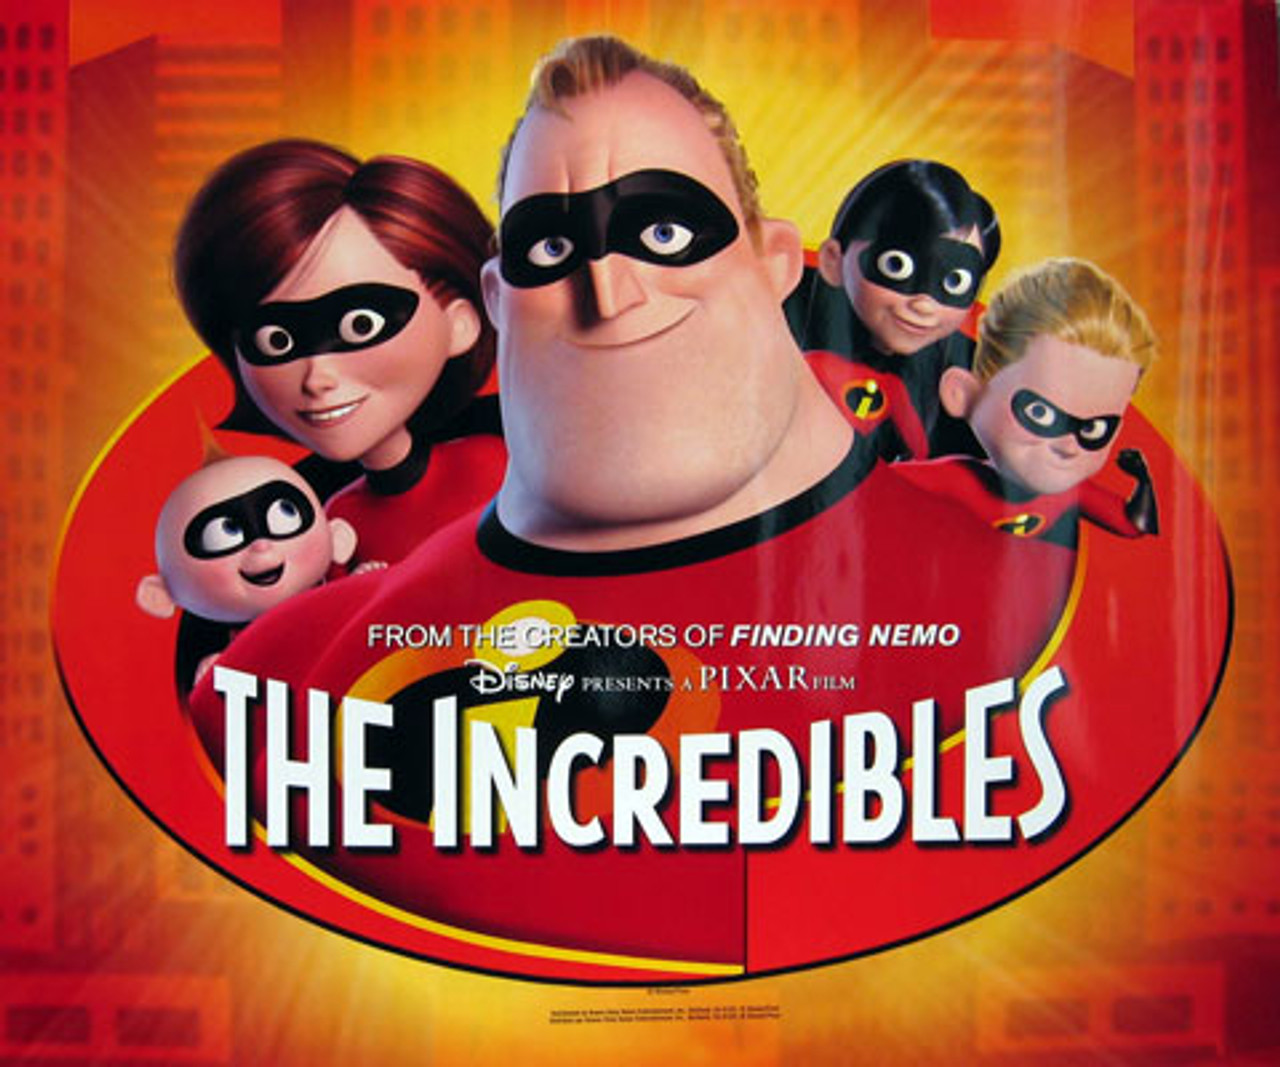 THE INCREDIBLES (Single Sided Glossy Mini Poster) POSTER buy movie ...